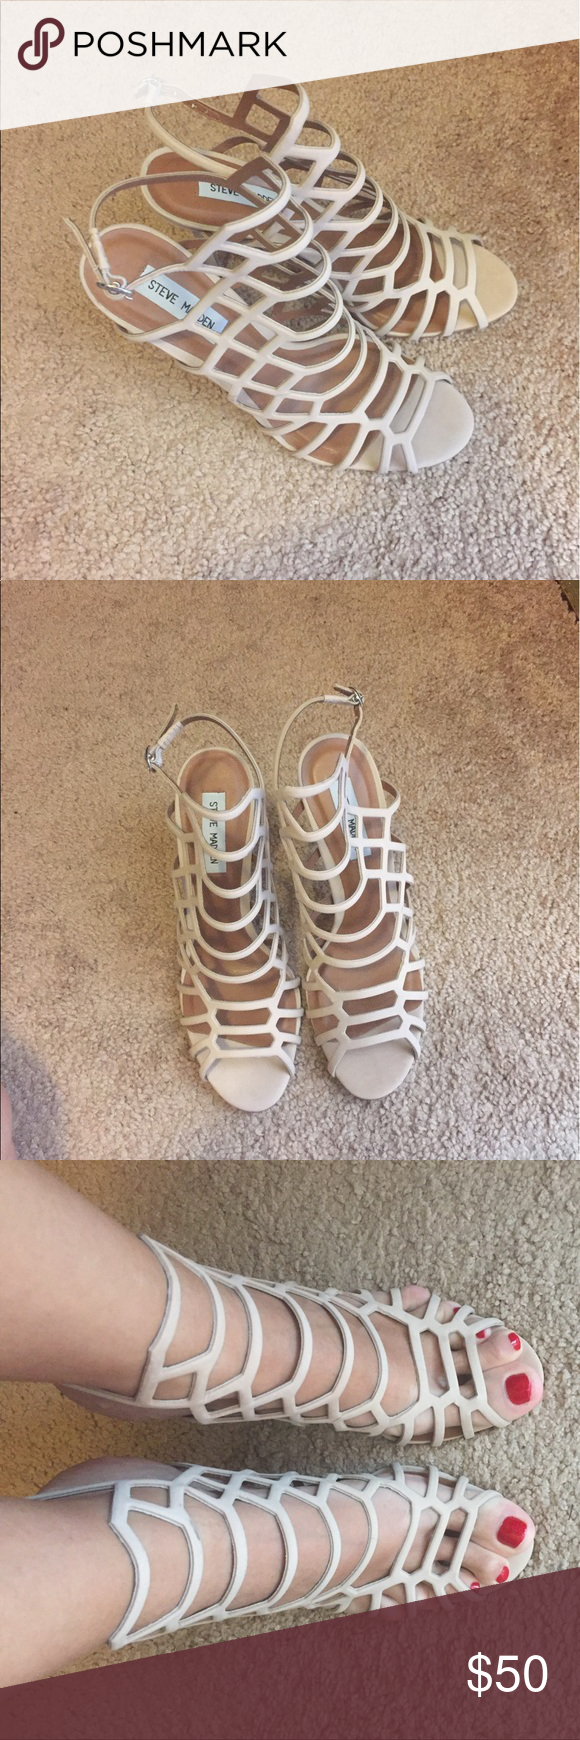 Steve Madden Sandals 🆕 sexy sandals for shoe lovers! Steve Madden Shoes Sandals